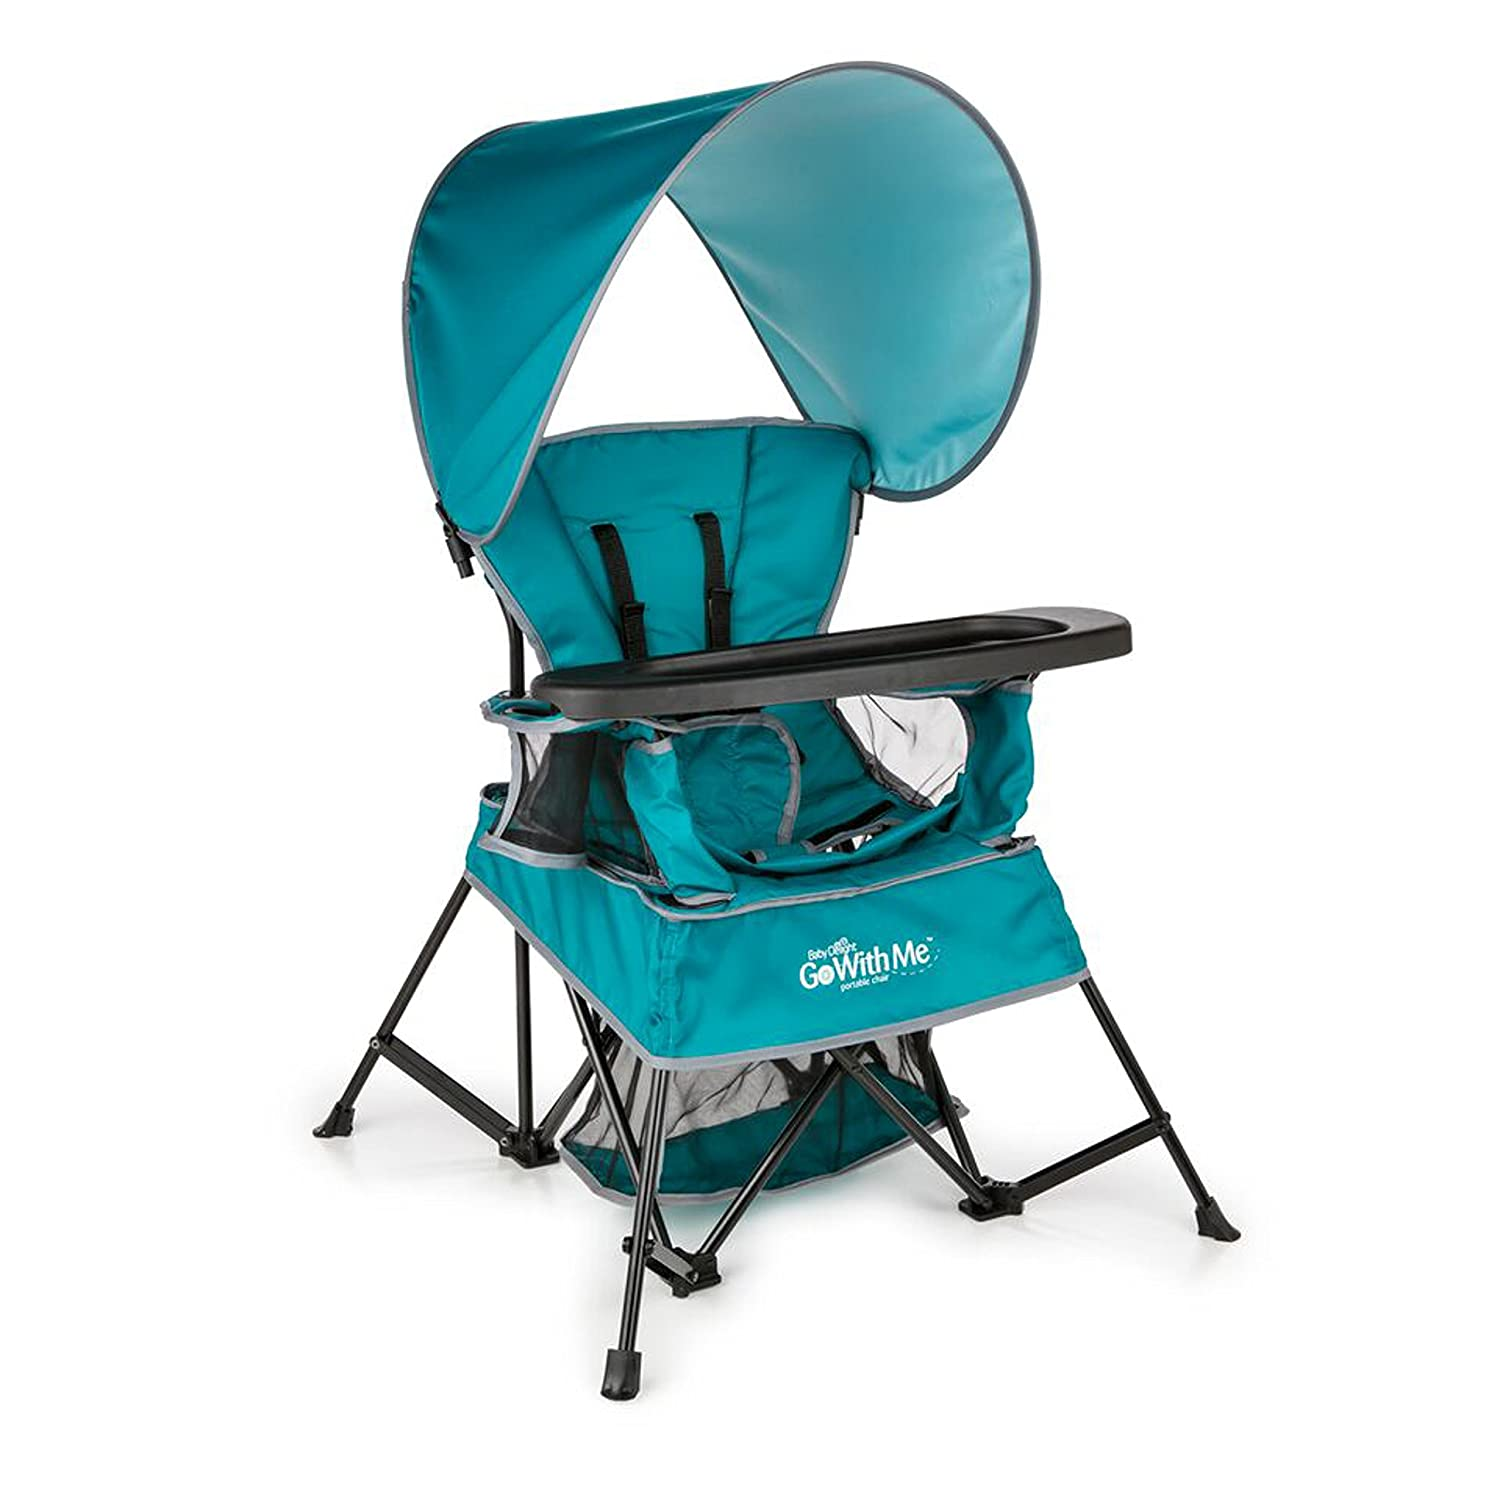 Amazon.com: Baby Delight Go With Me Chair, Teal: Baby